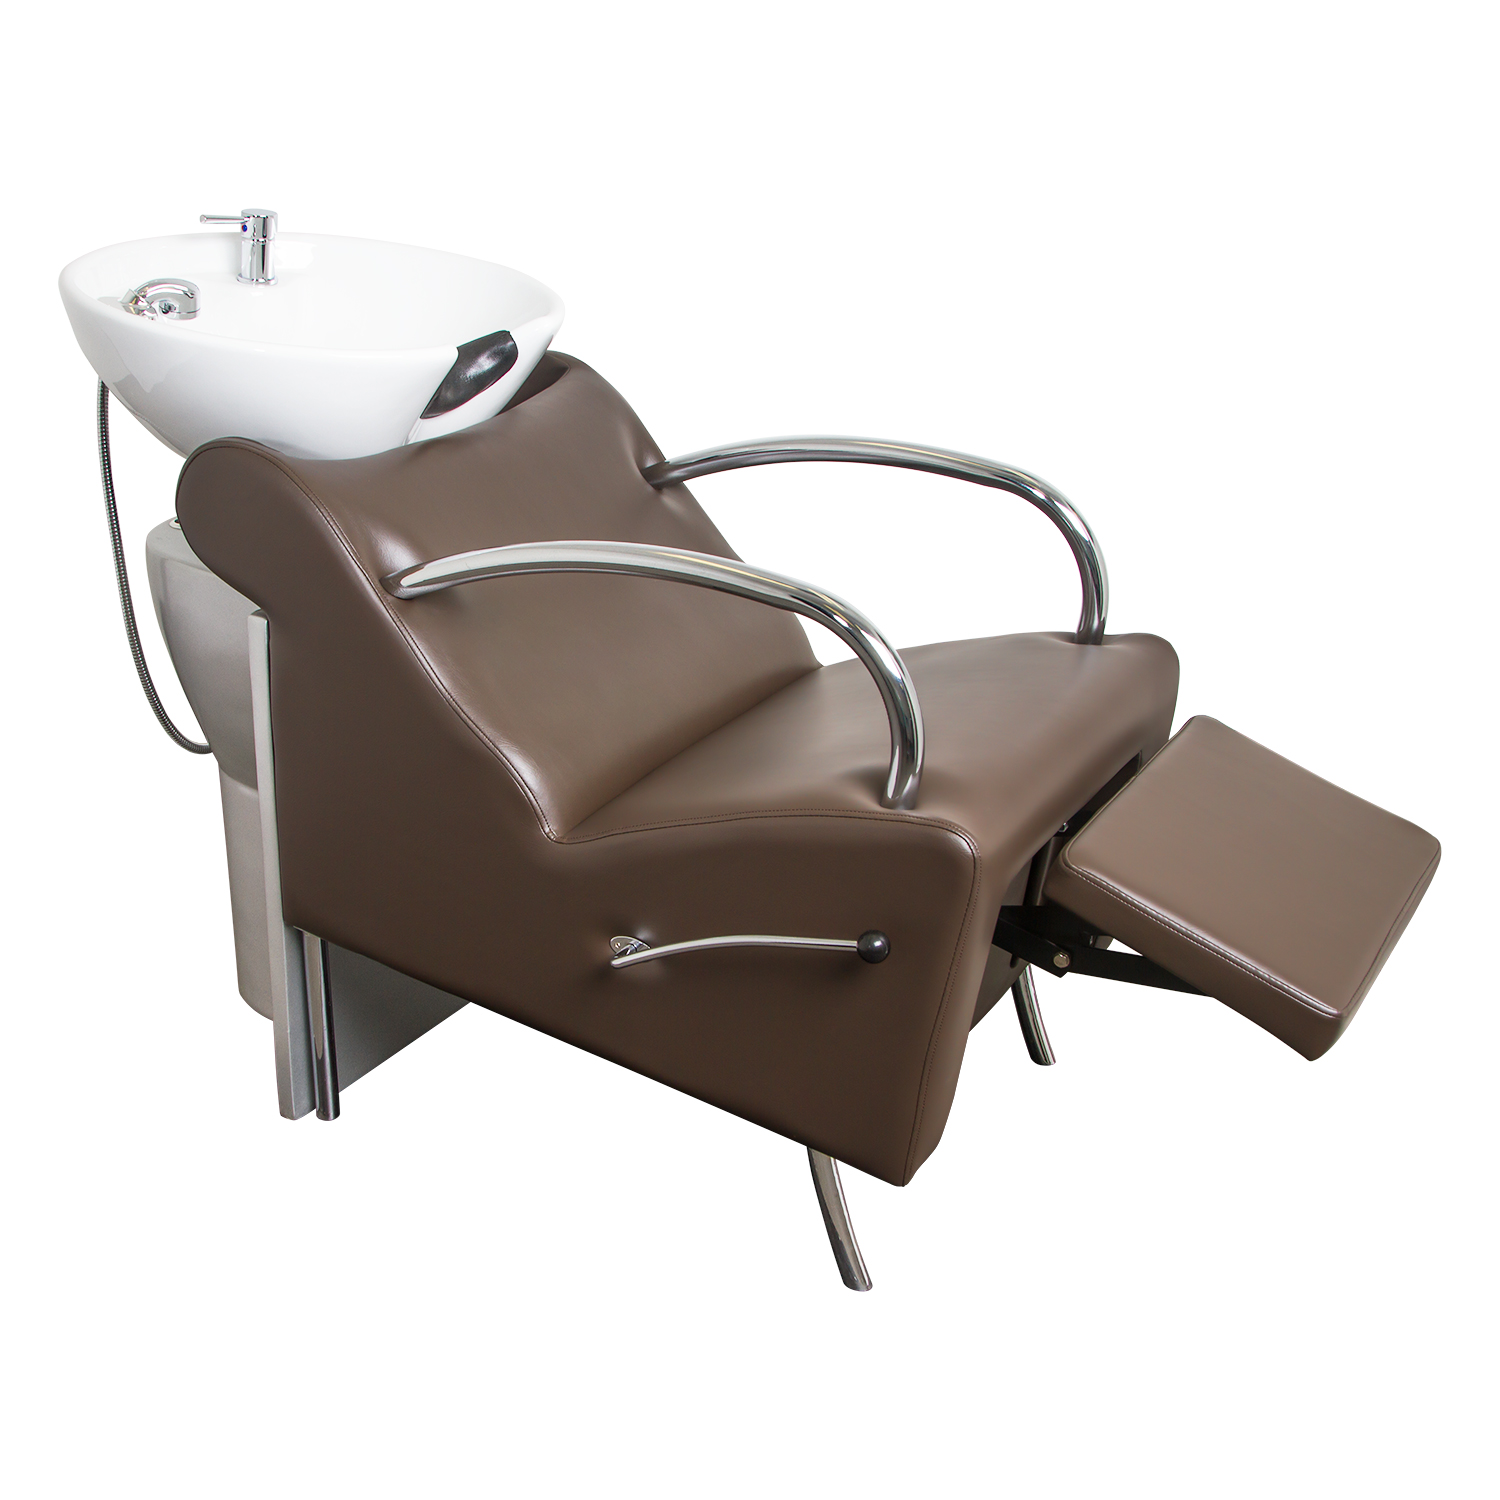 Brown Stockholm Shampoo Chair with White Bowl  main product image